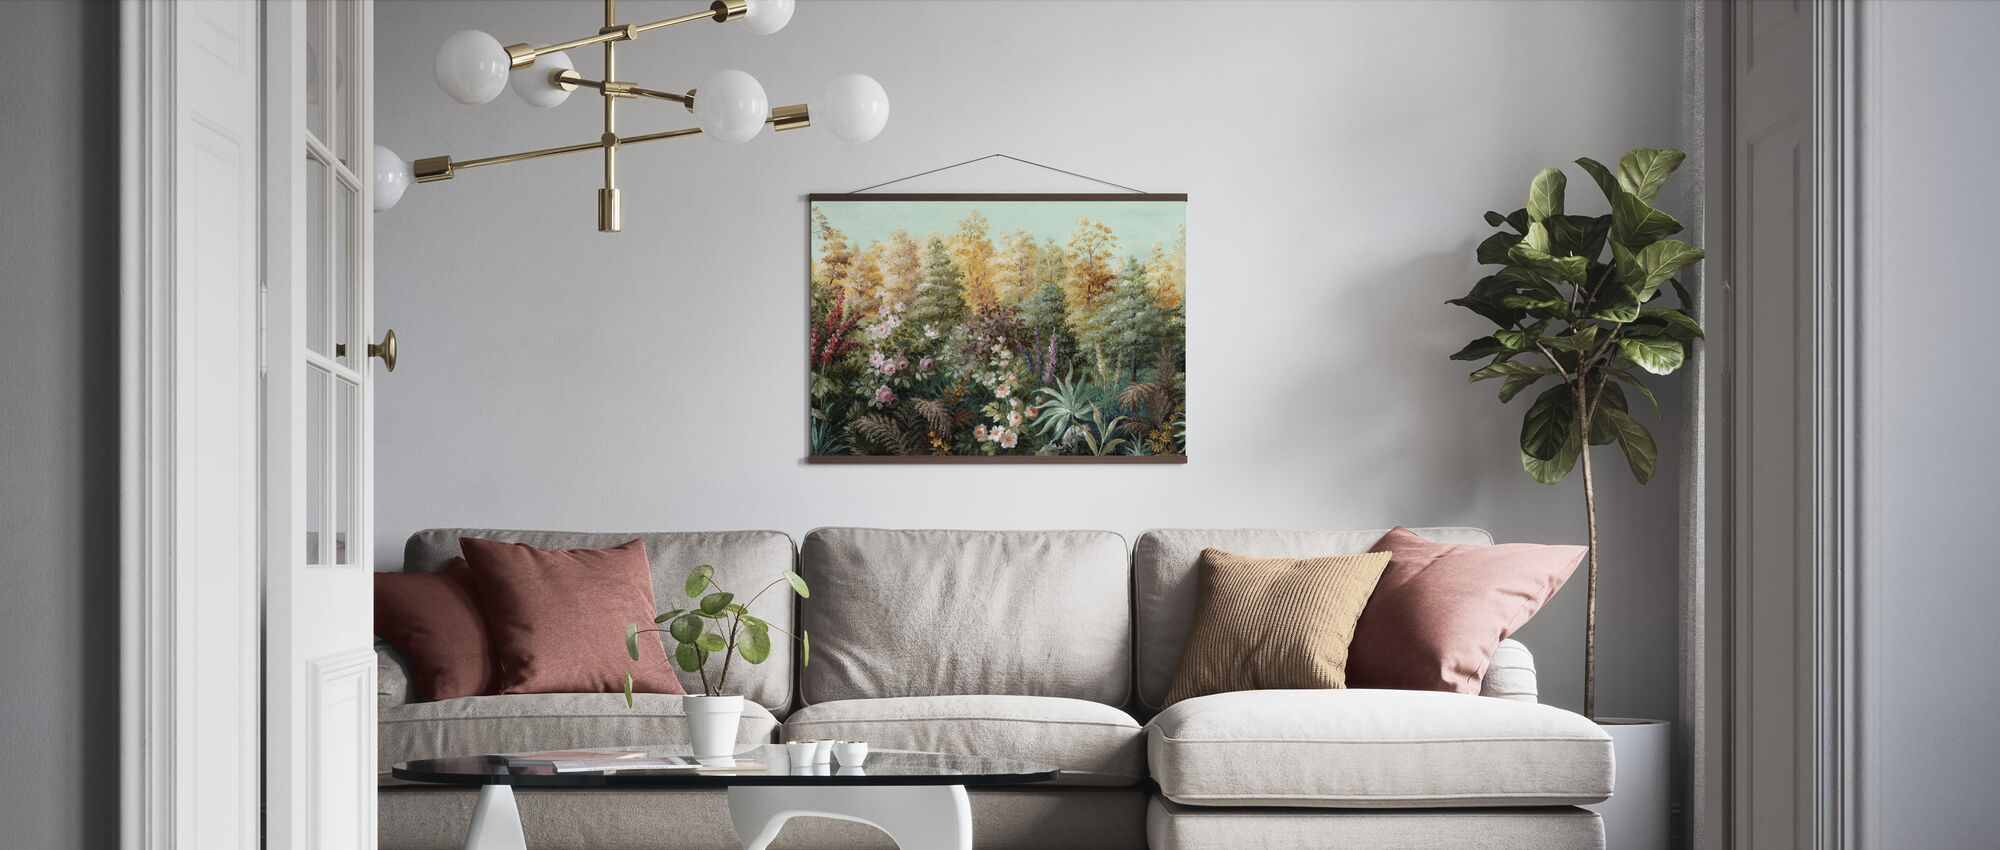 Wonderland Potpourri - Poster - Living Room